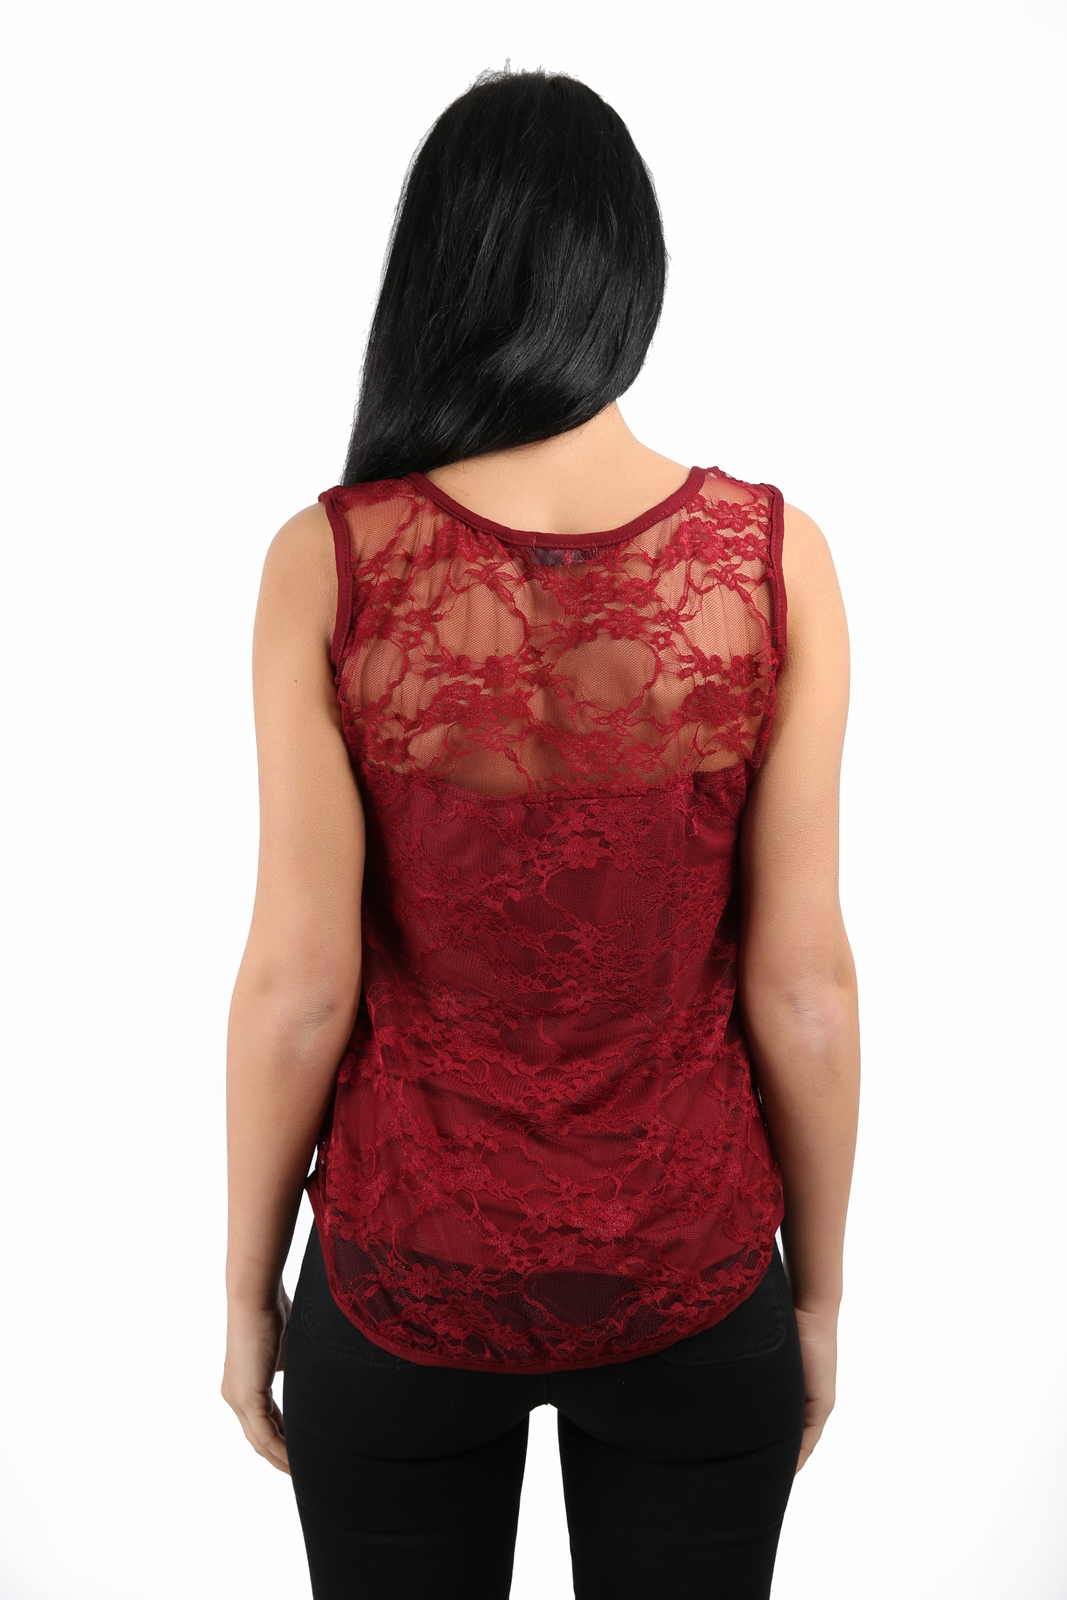 LADIES SLEEVELESS STRETCH BODYCON LACE TOP WOMENS VEST TOP T-SHIRT